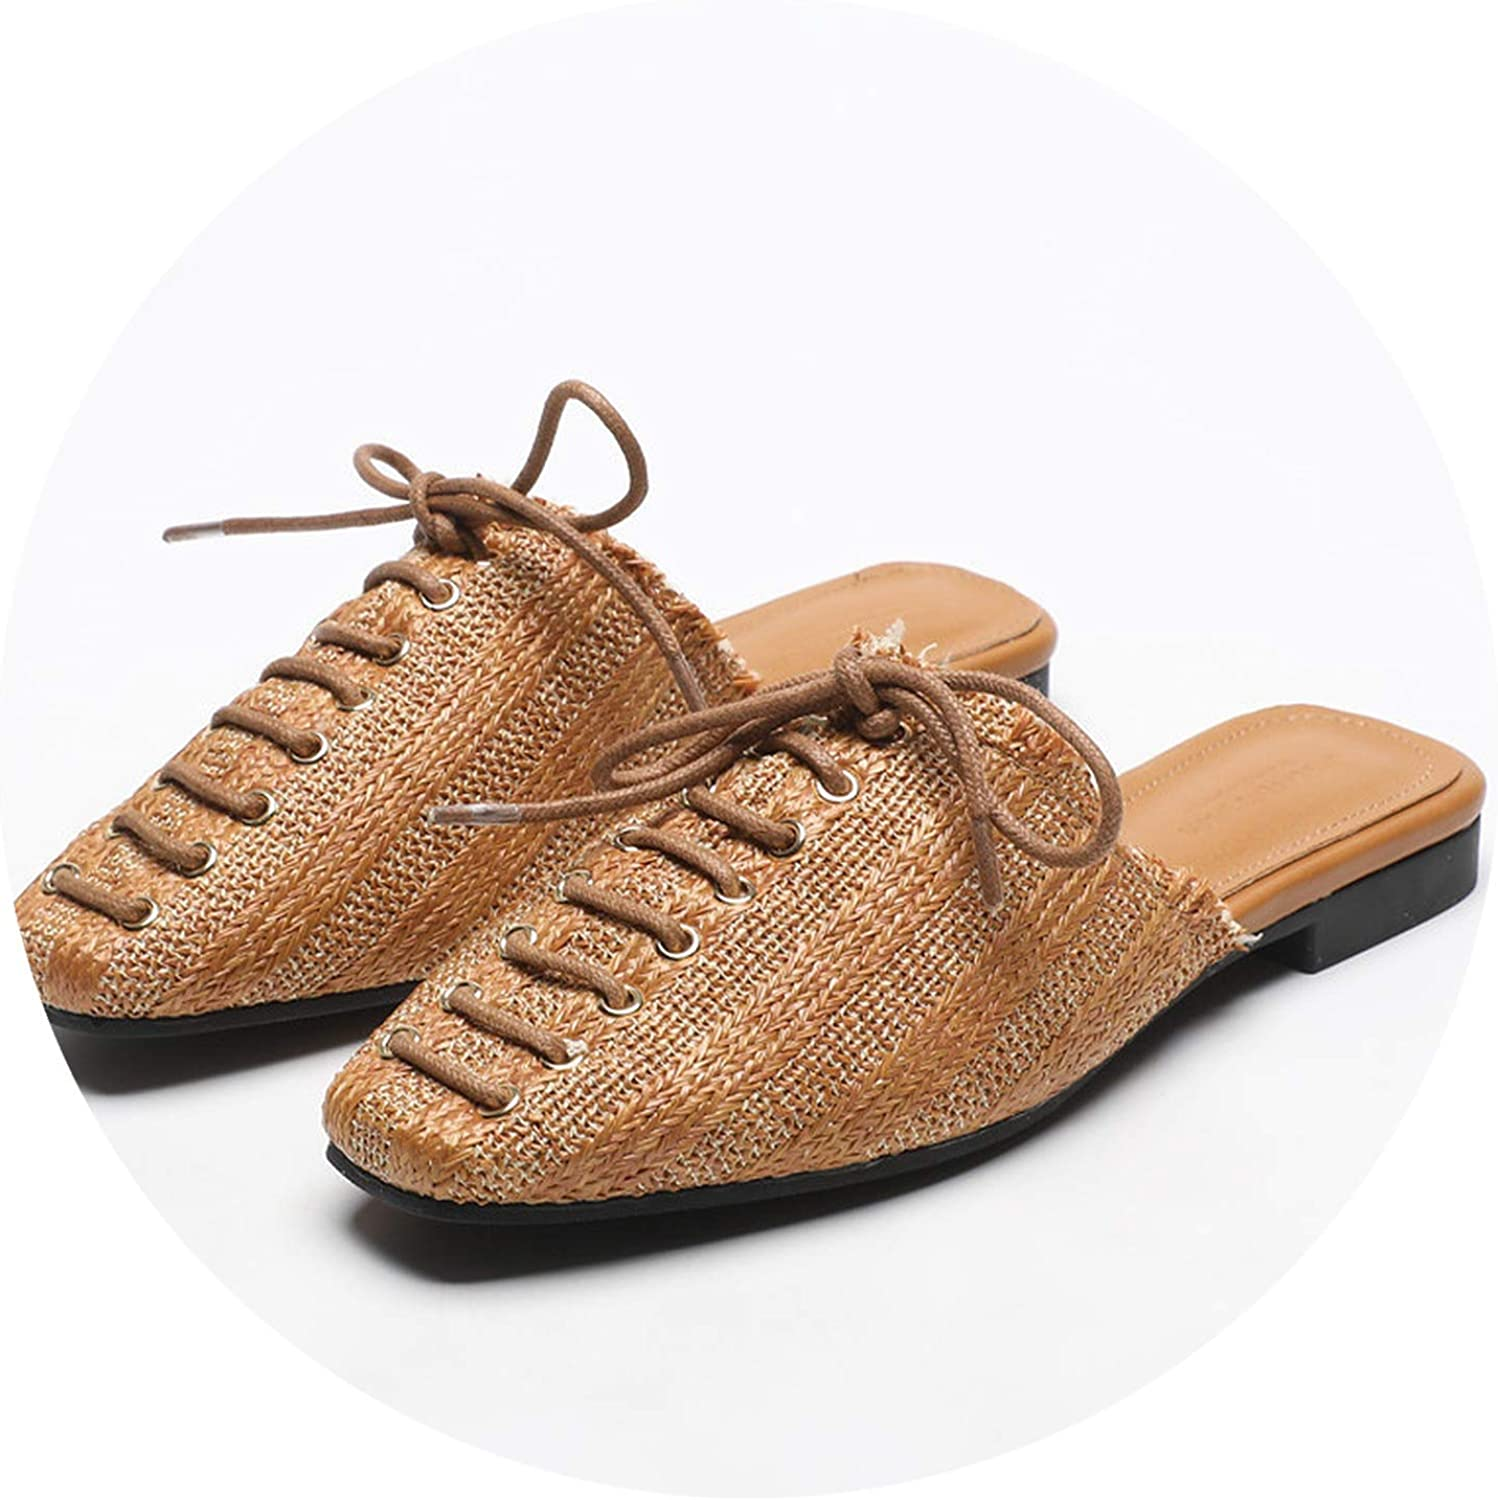 Cross-Tied Microfiber Slippers Weaving Mules shoes Woman Summer Square Toe Straw Flats Flip Flops Femme Slides Casual